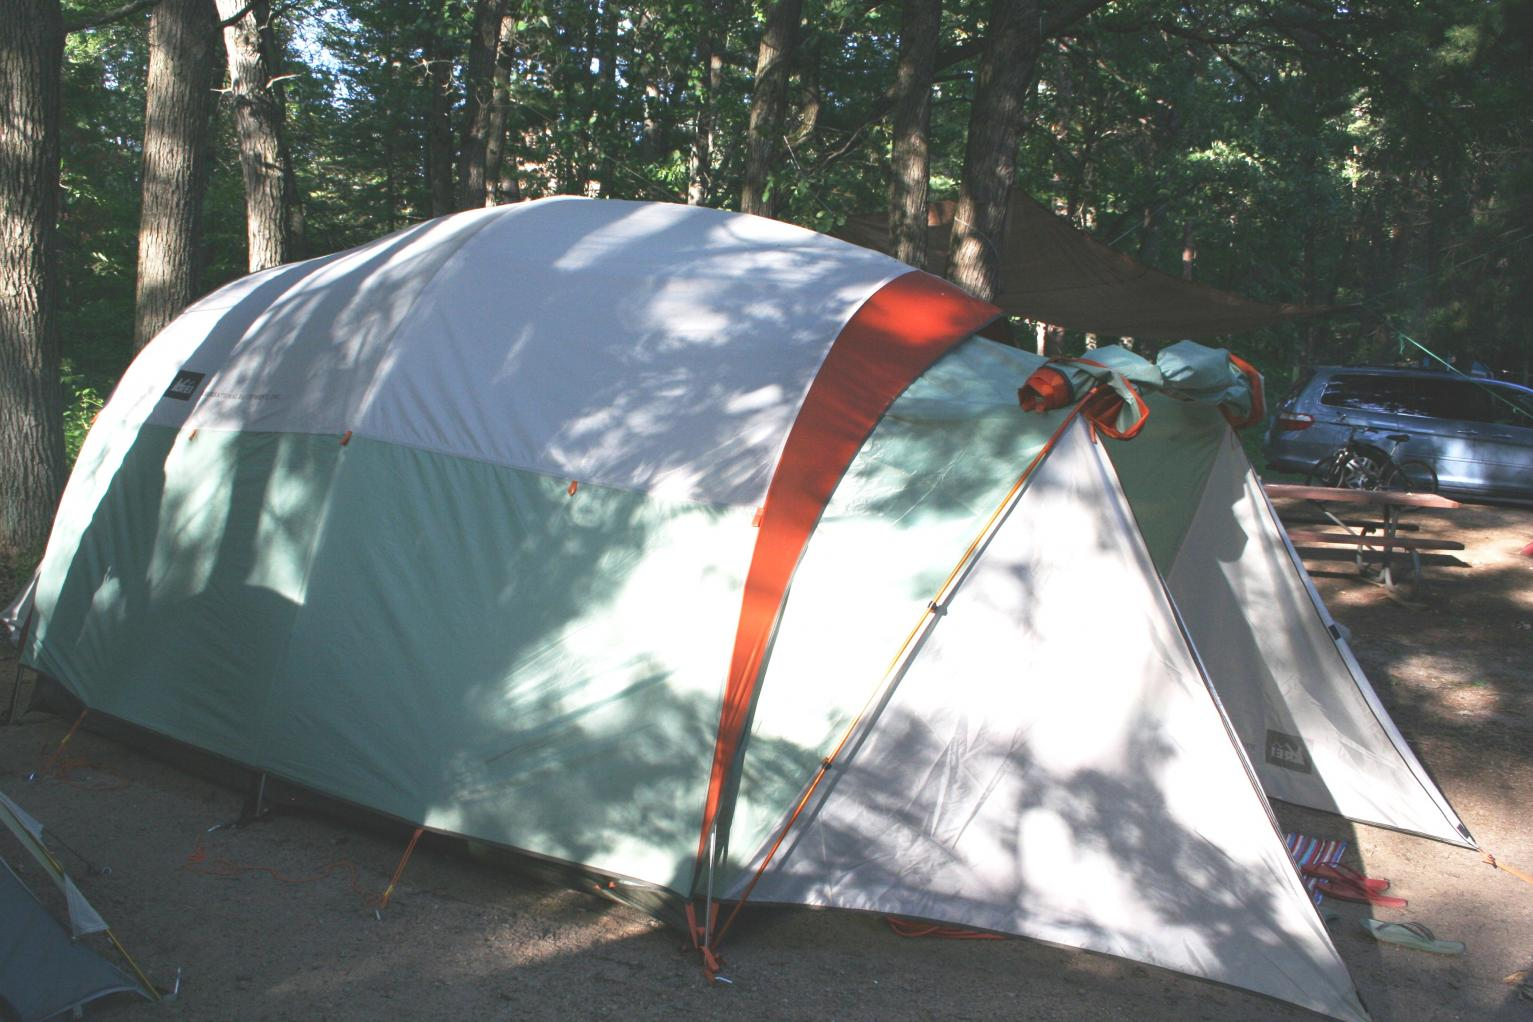 I really Need a New Tent...Suggestions?-kingdom-6.jpg